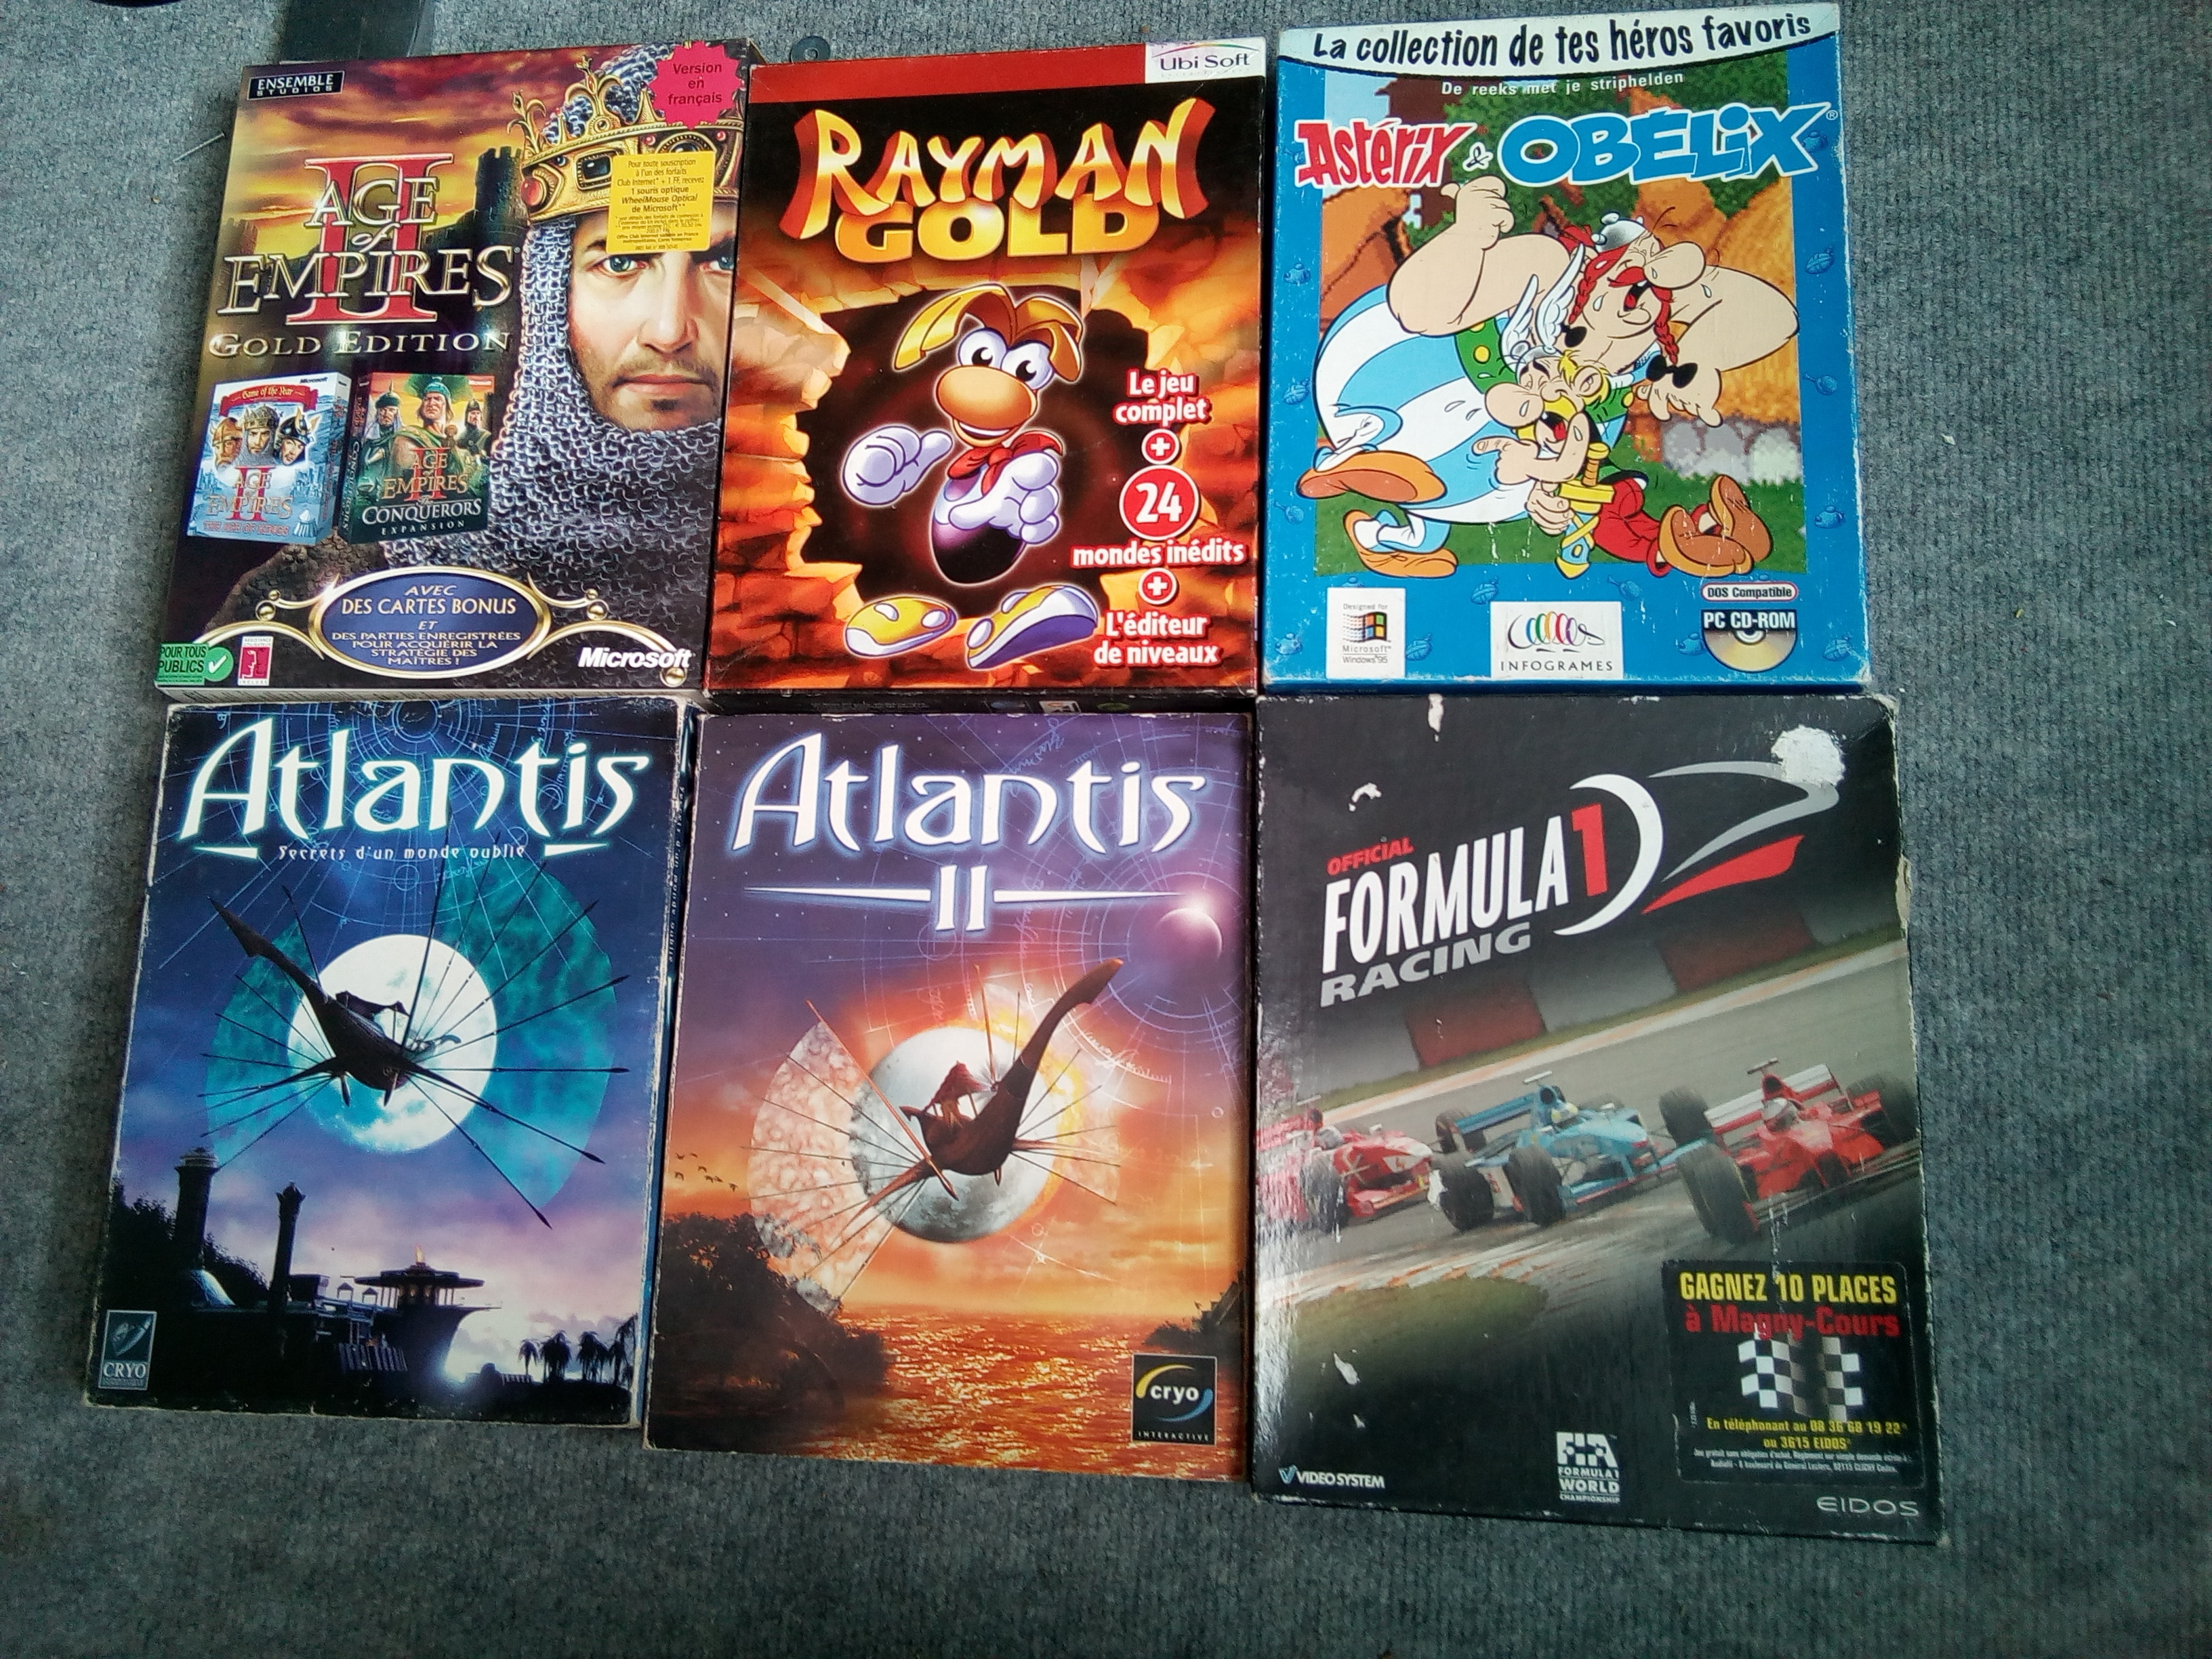 maxfly shop (Maj 07/05) coleco, atari, big box... etc 181104122129356617